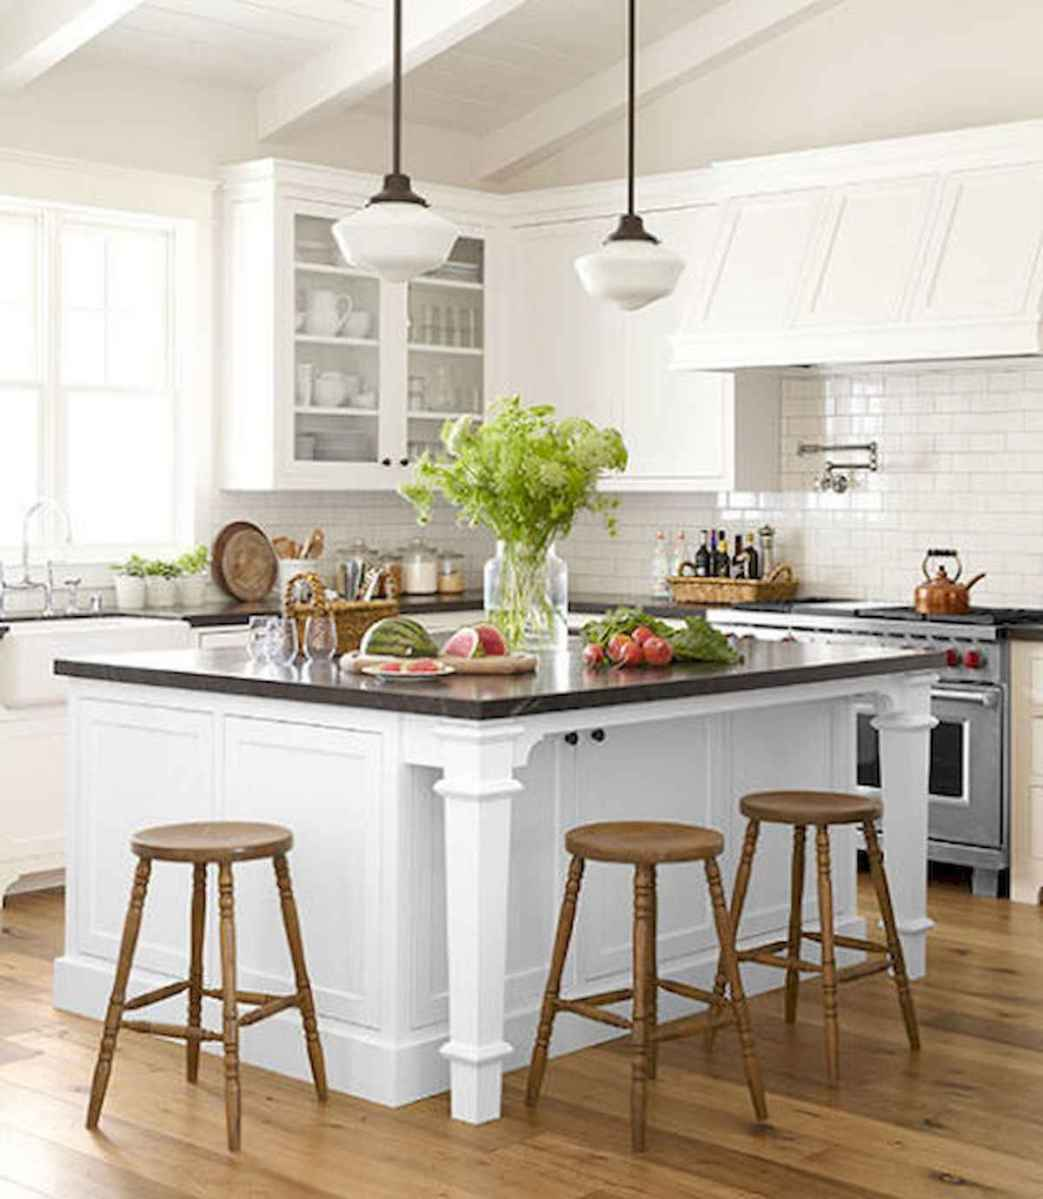 100 Awesome Vintage Dining Table Design Ideas Decorations And Remodel (31)